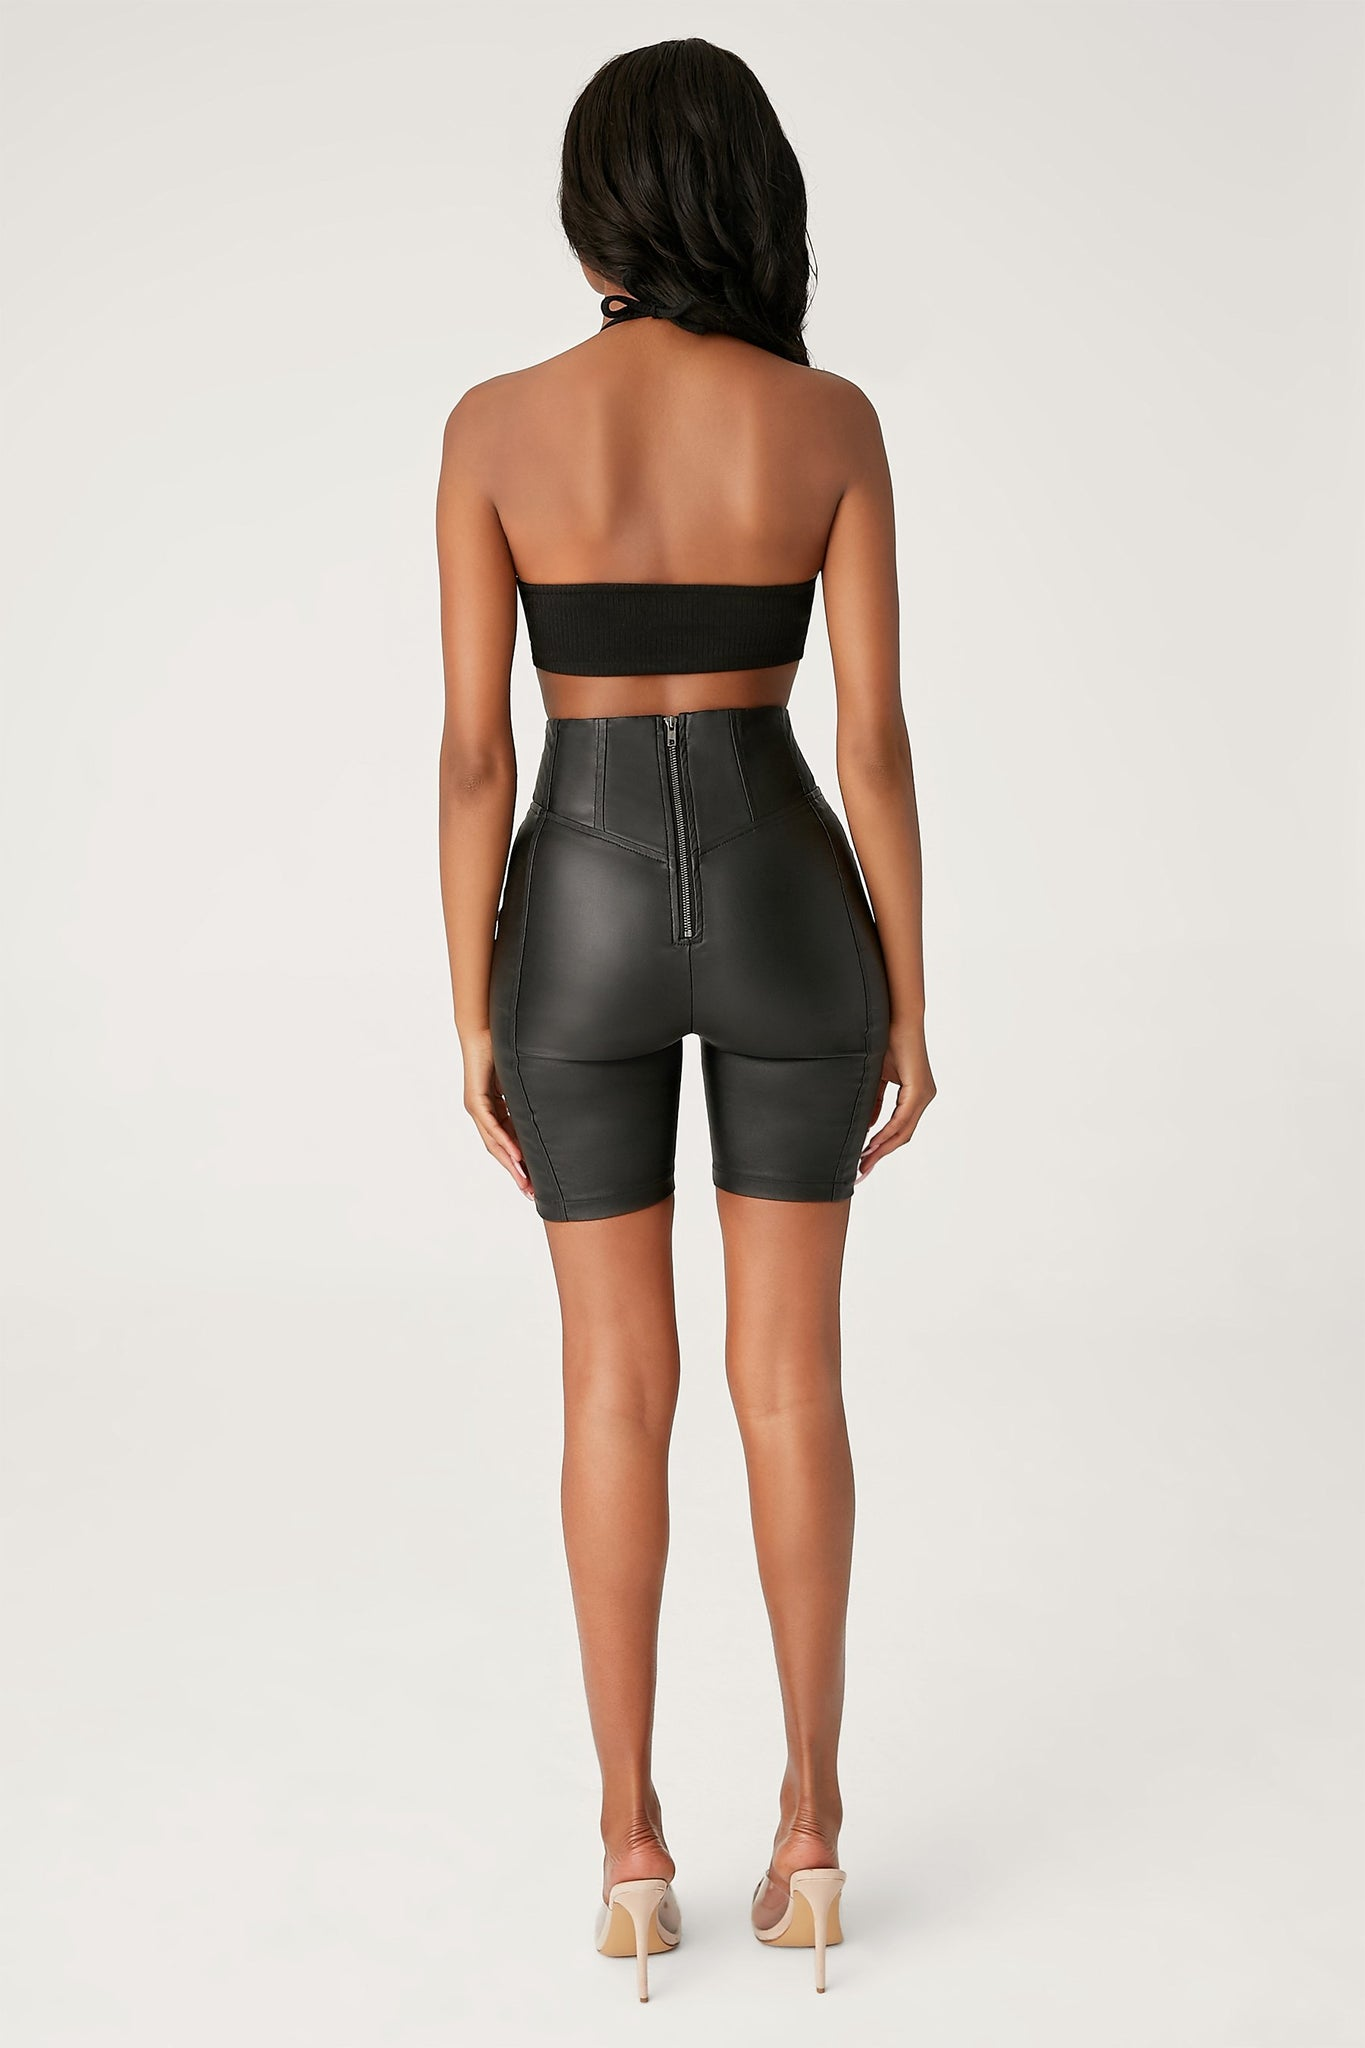 Zoe Leatherette Corseted Bike Shorts - Black - MESHKI